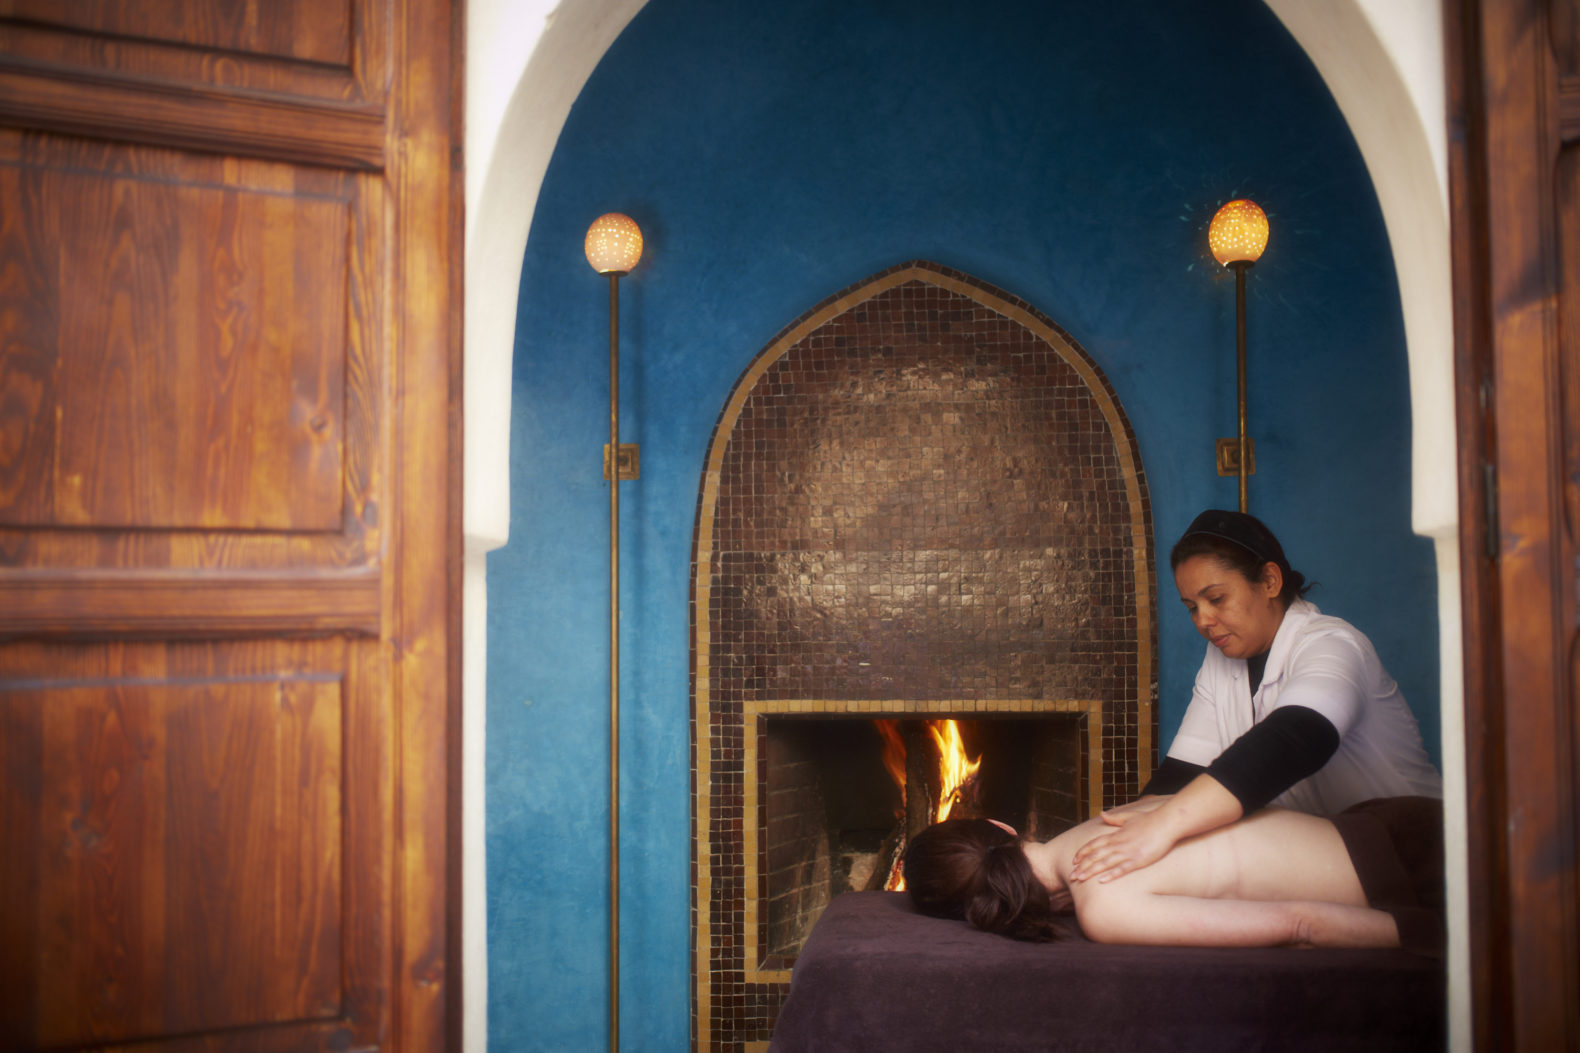 spa-massage-fireplace-relax-renew-el-fenn-morocco-marrakesh